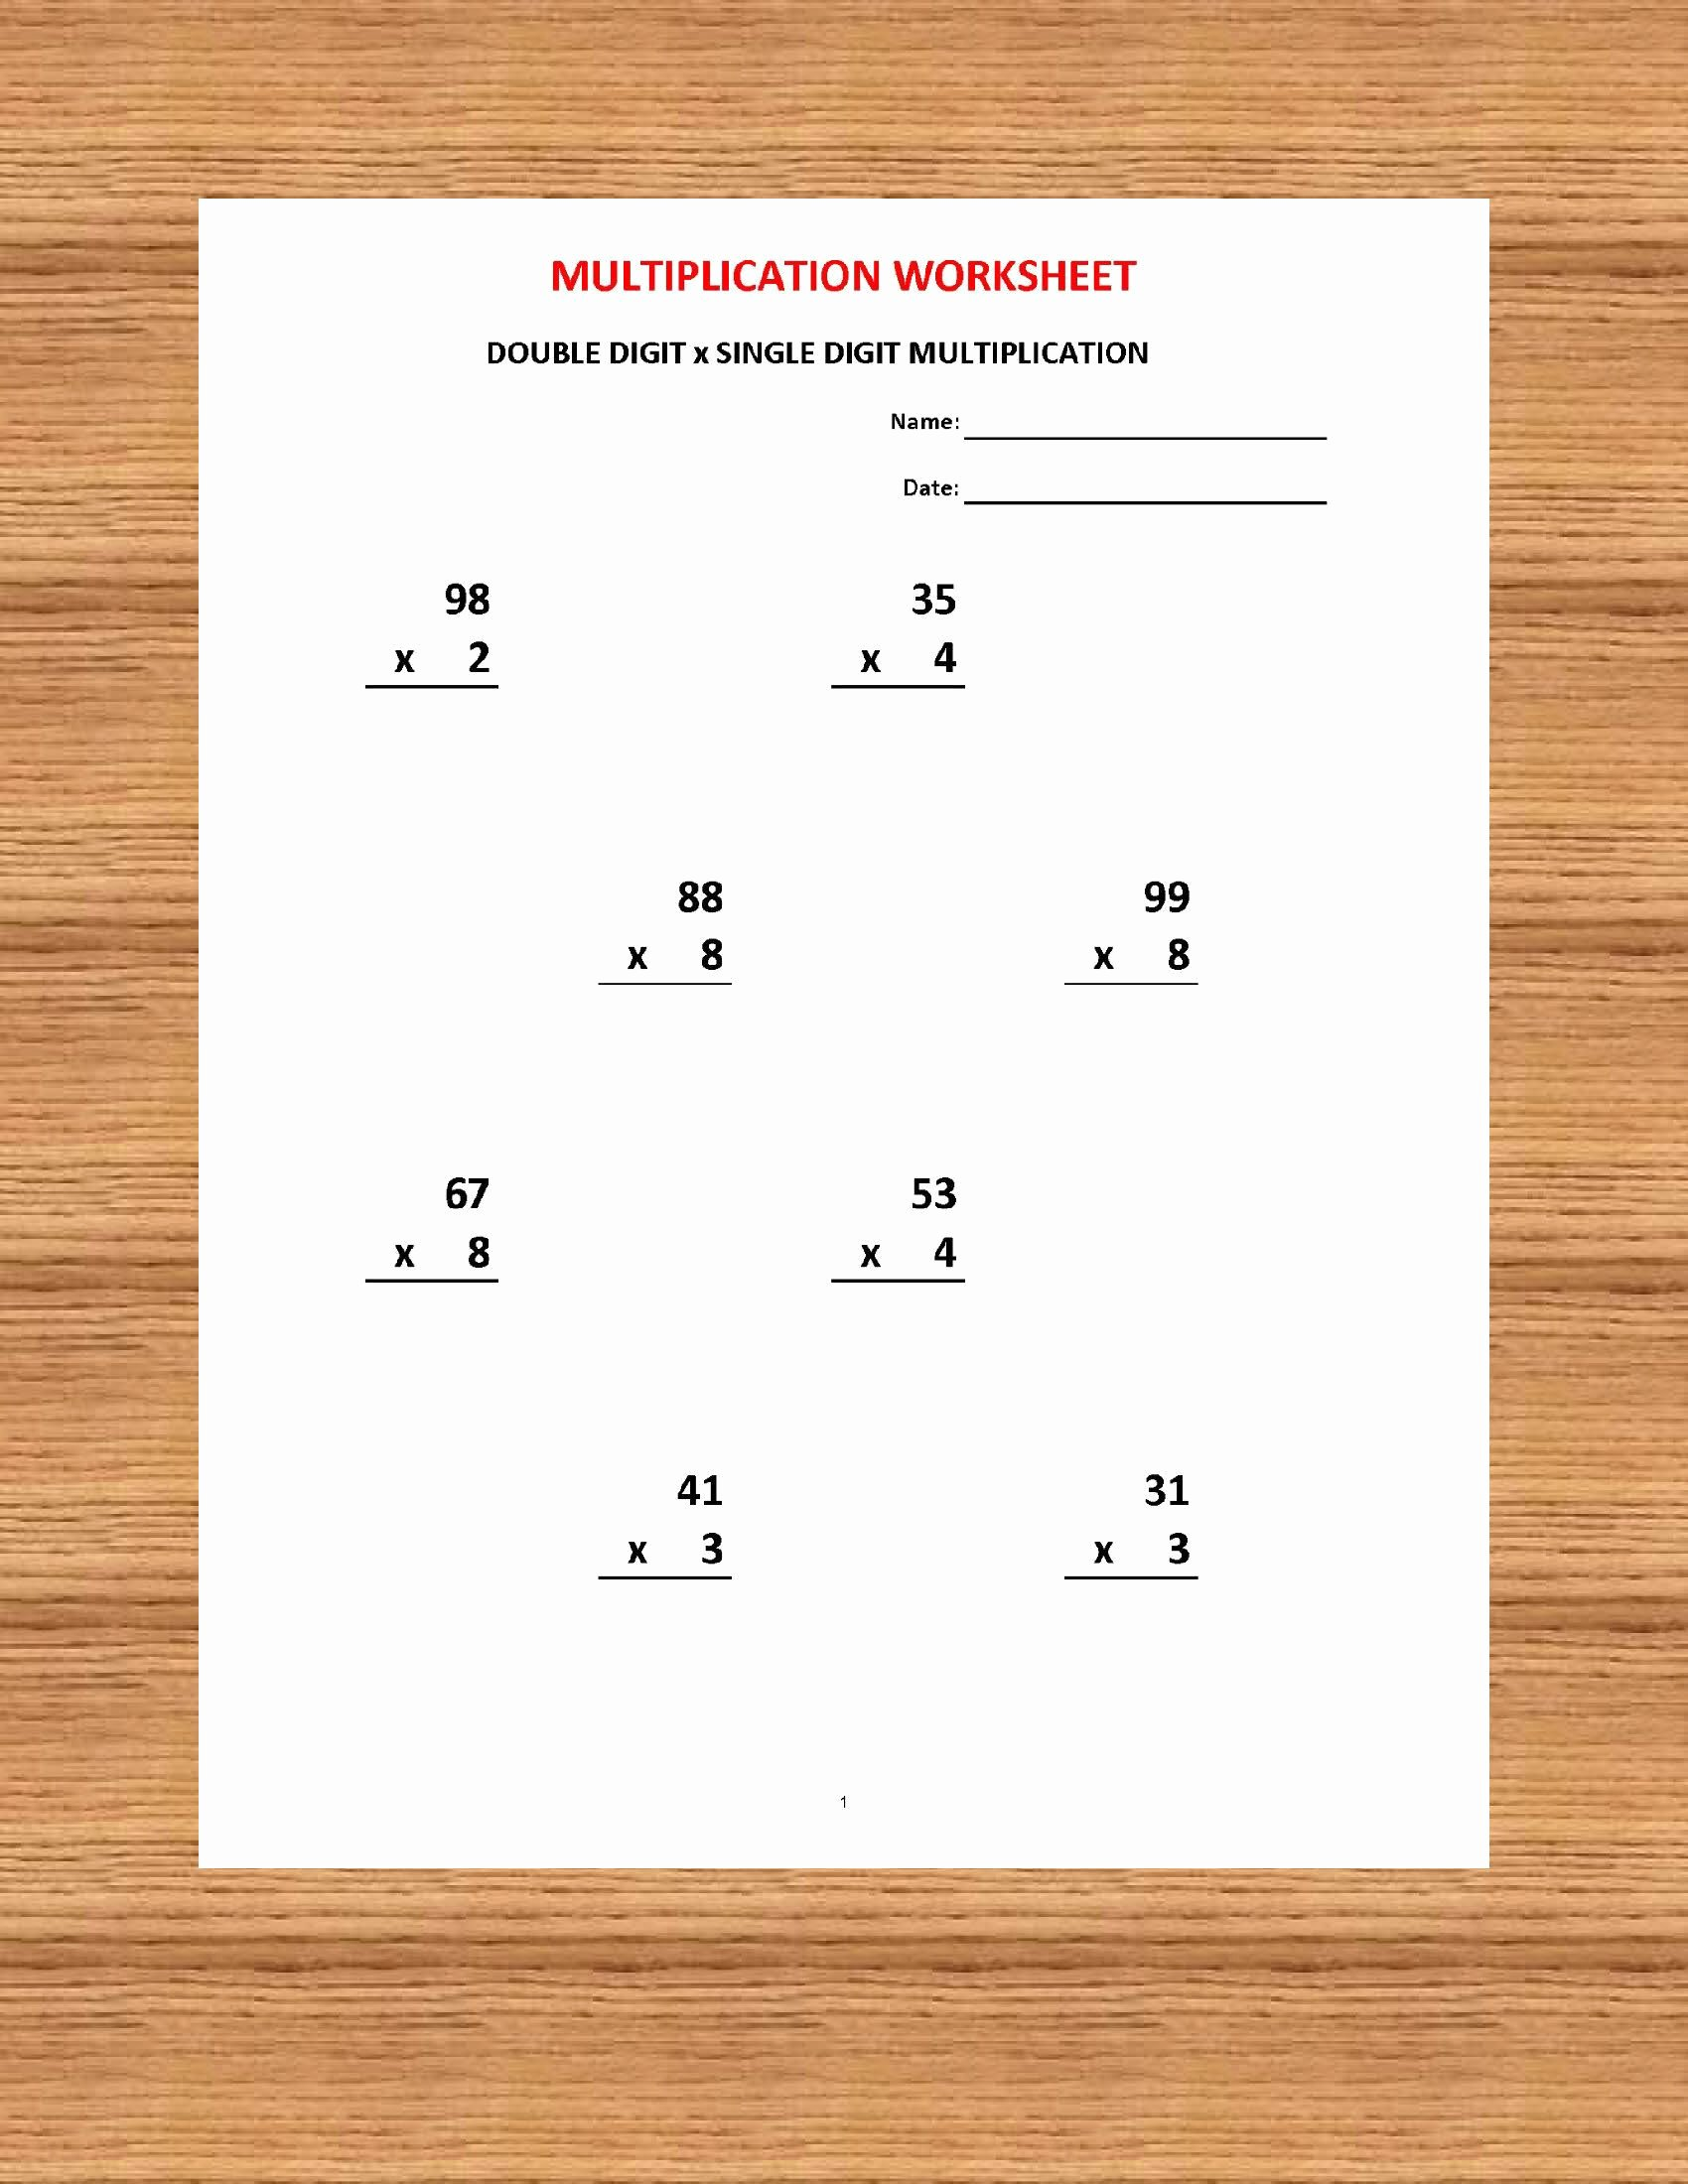 Multiplication Worksheets Answers Unique Addition 1 Minute Drill H 10 Math Worksheets with Answers